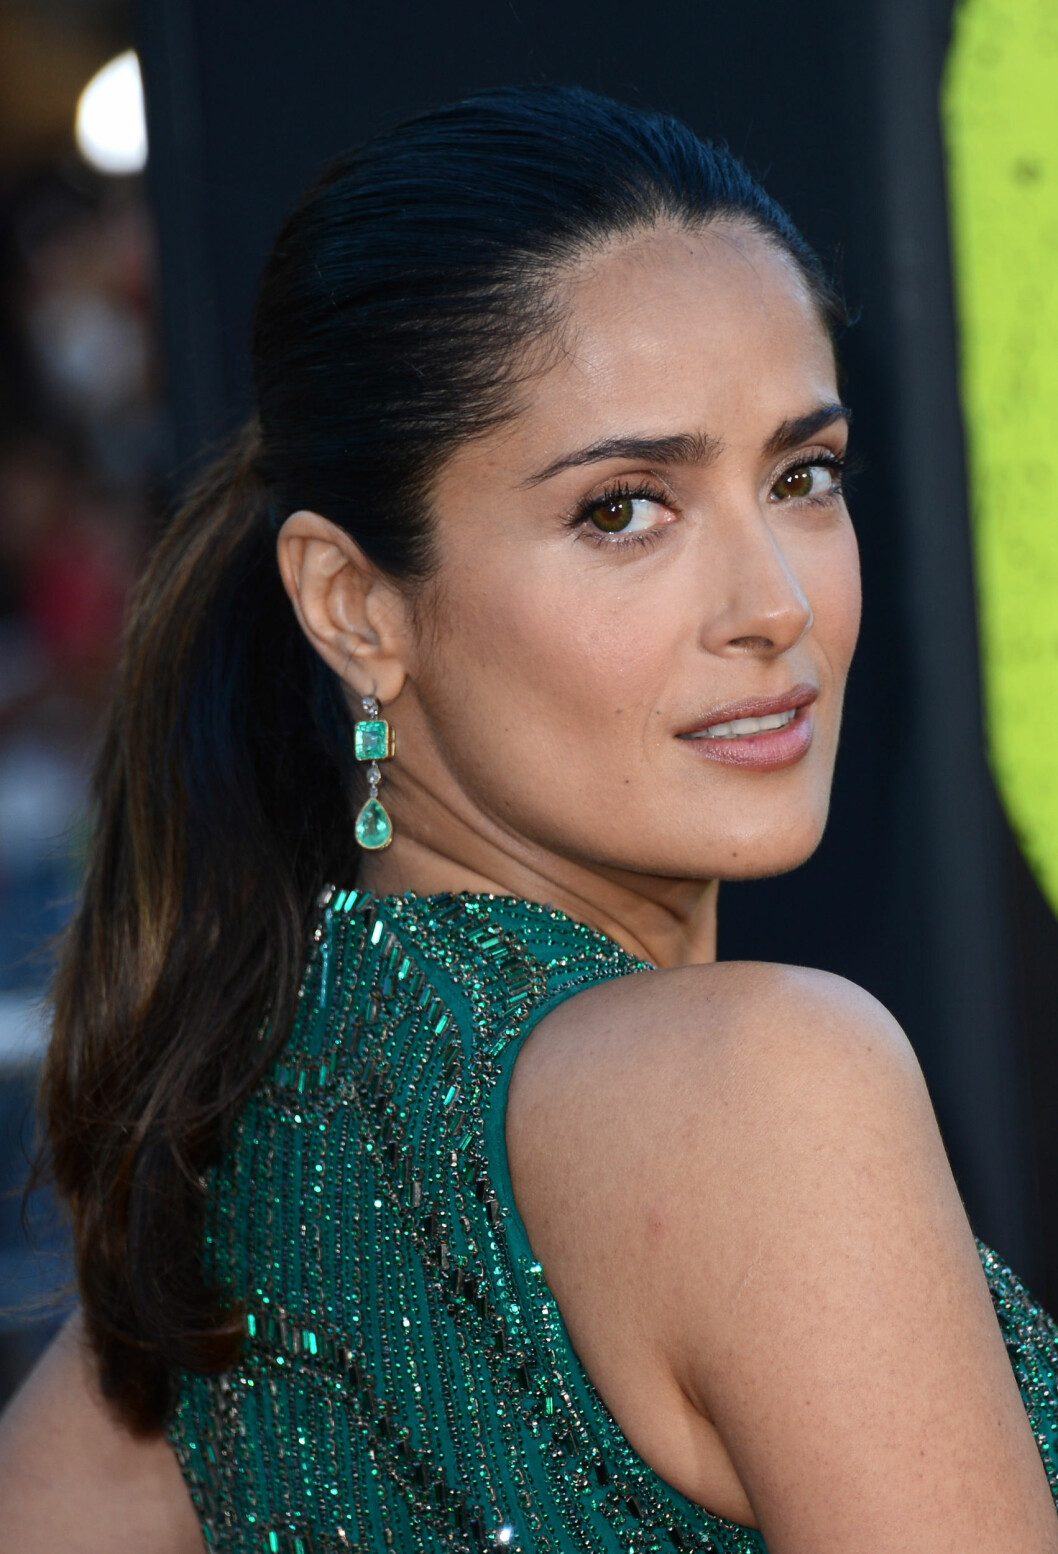 <strong>LOS ANGELES, CA - JUNE 25:</strong>  Actress Salma Hayek arrives at the premiere of Universal Pictures Savages at Westwood Village on June 25, 2012 in Los Angeles, California.  (Photo by Michael Buckner/Getty Images) Foto: Getty Images/Getty Images/All Over Press